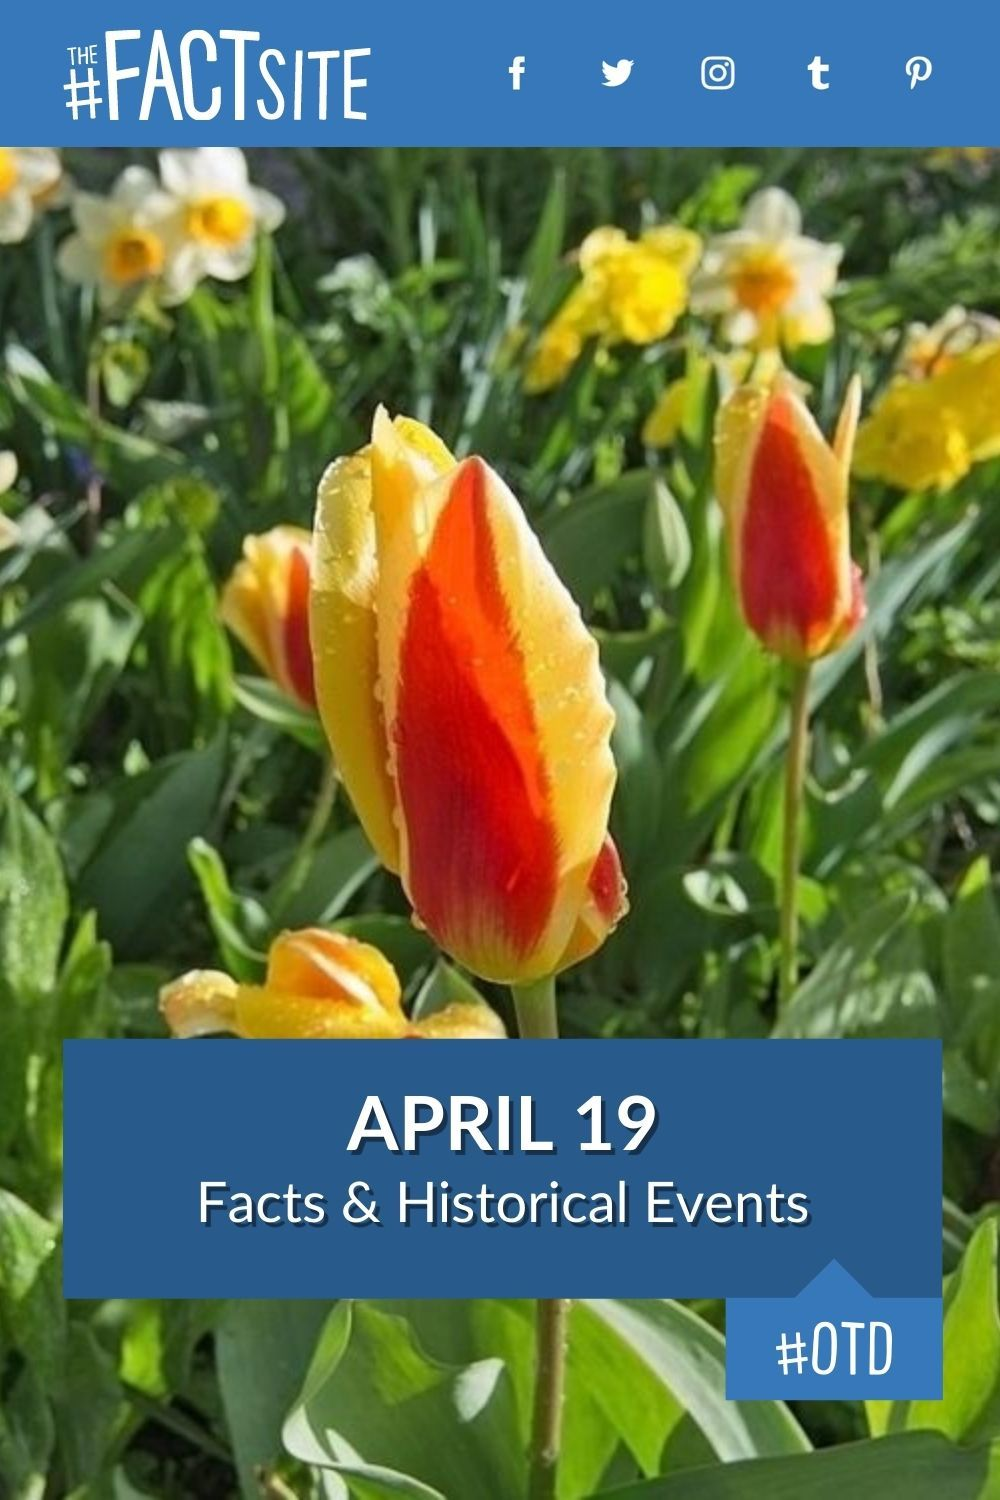 Facts & Historic Events That Happened on April 19